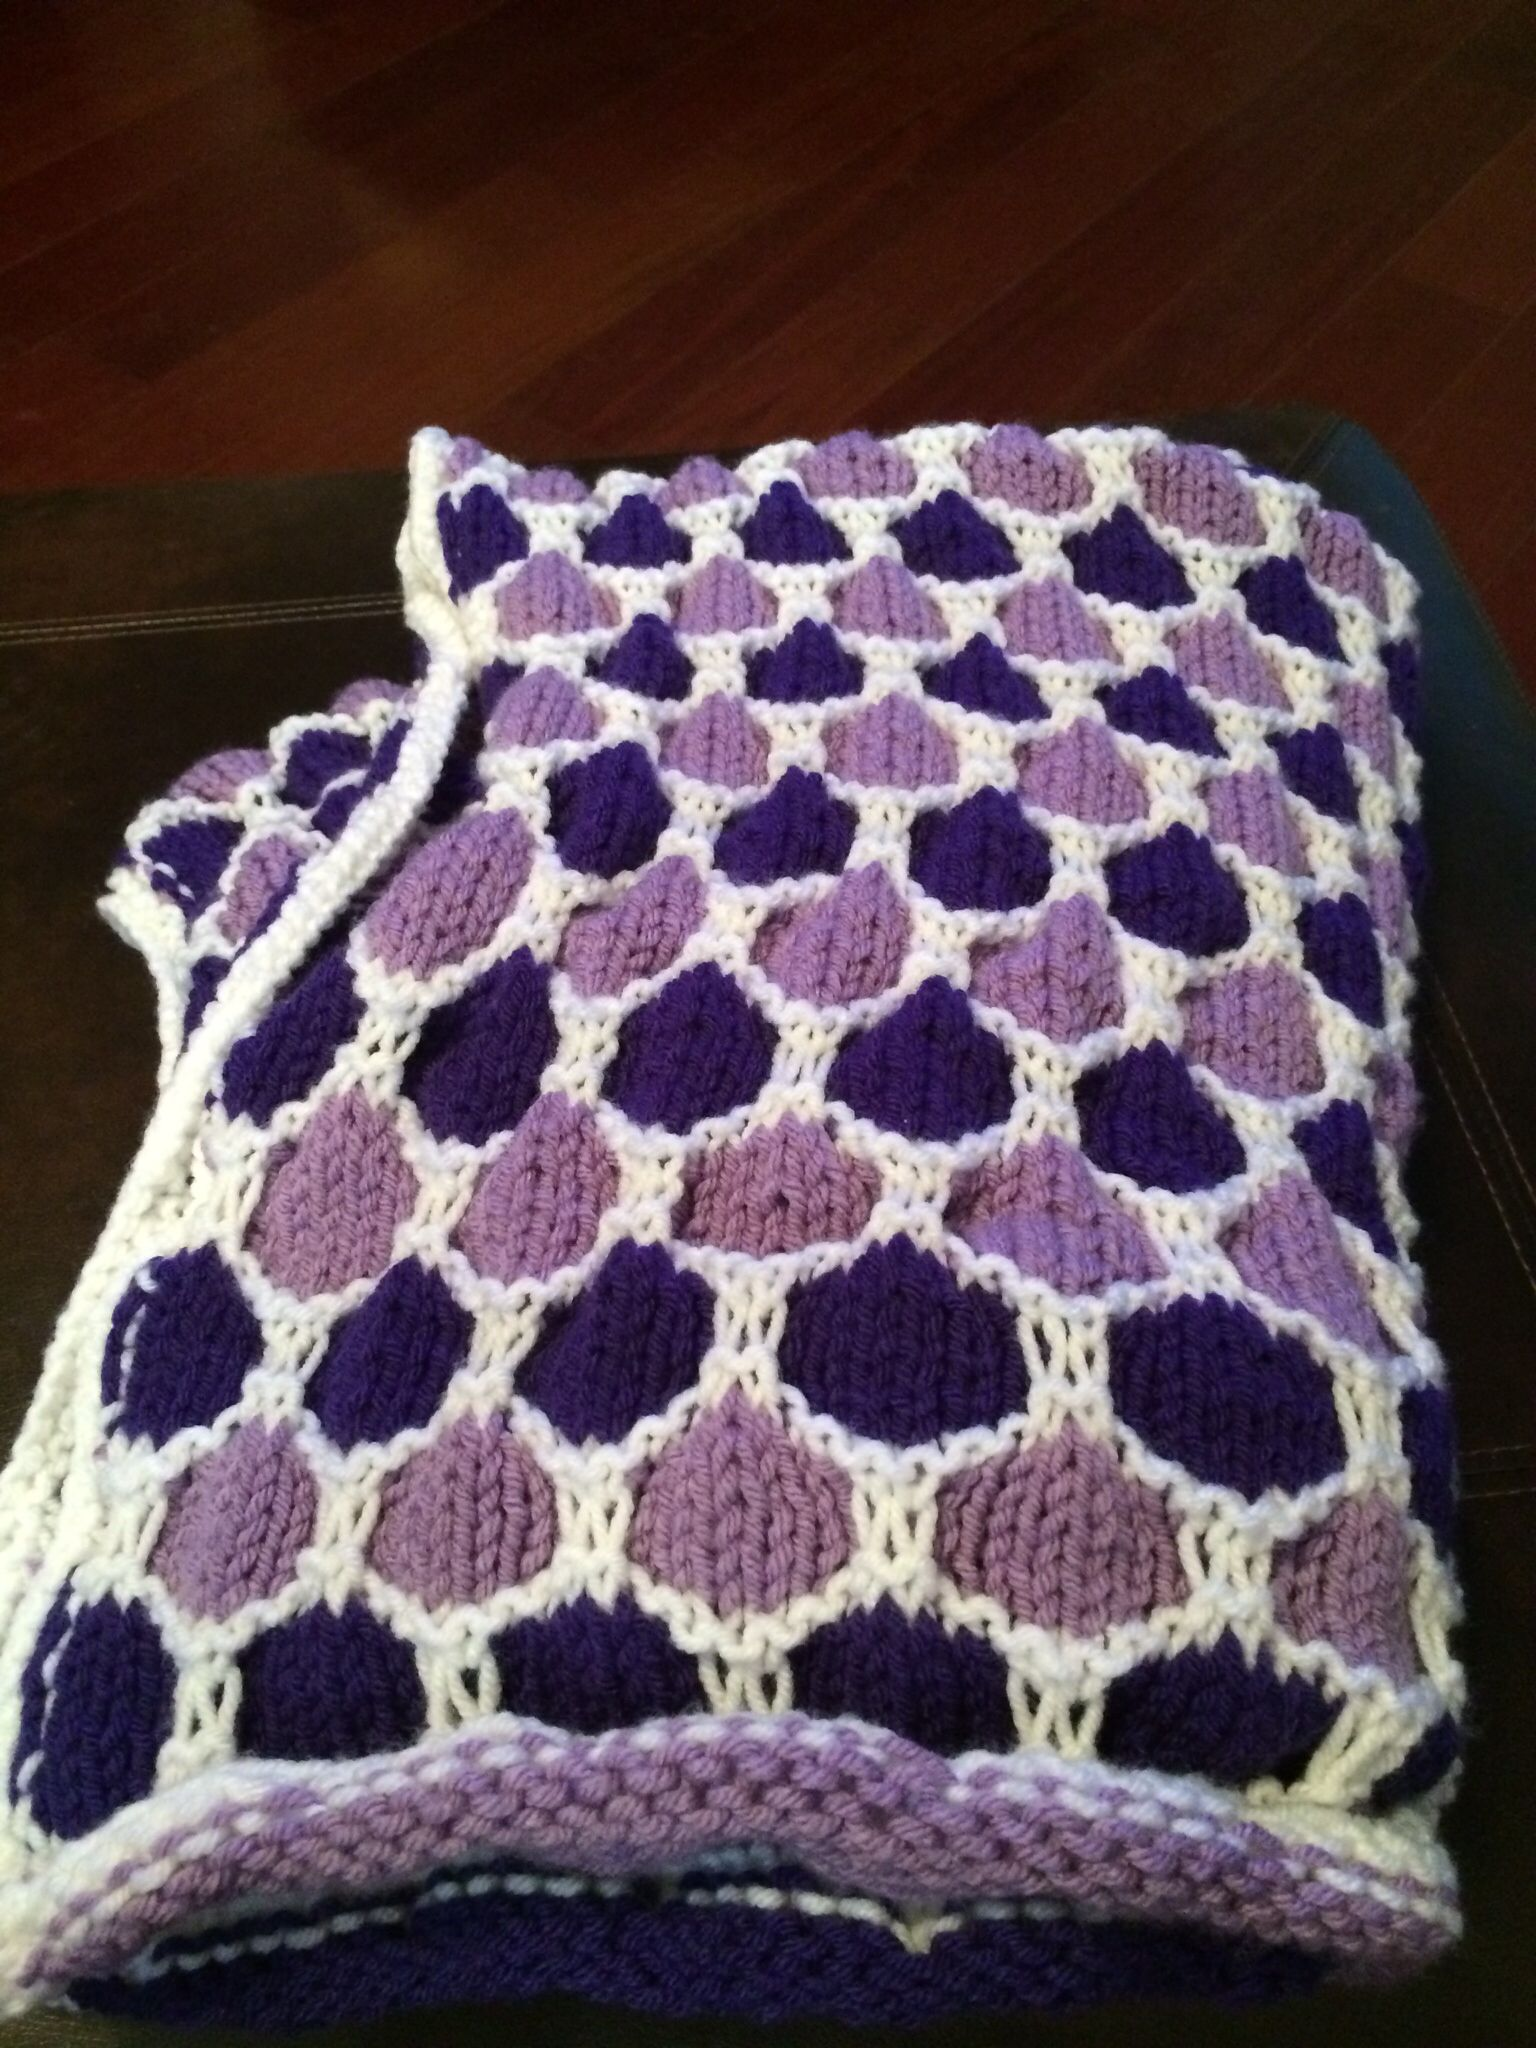 Completed Honeycomb Knit Baby Blanket | Knitting patterns ...